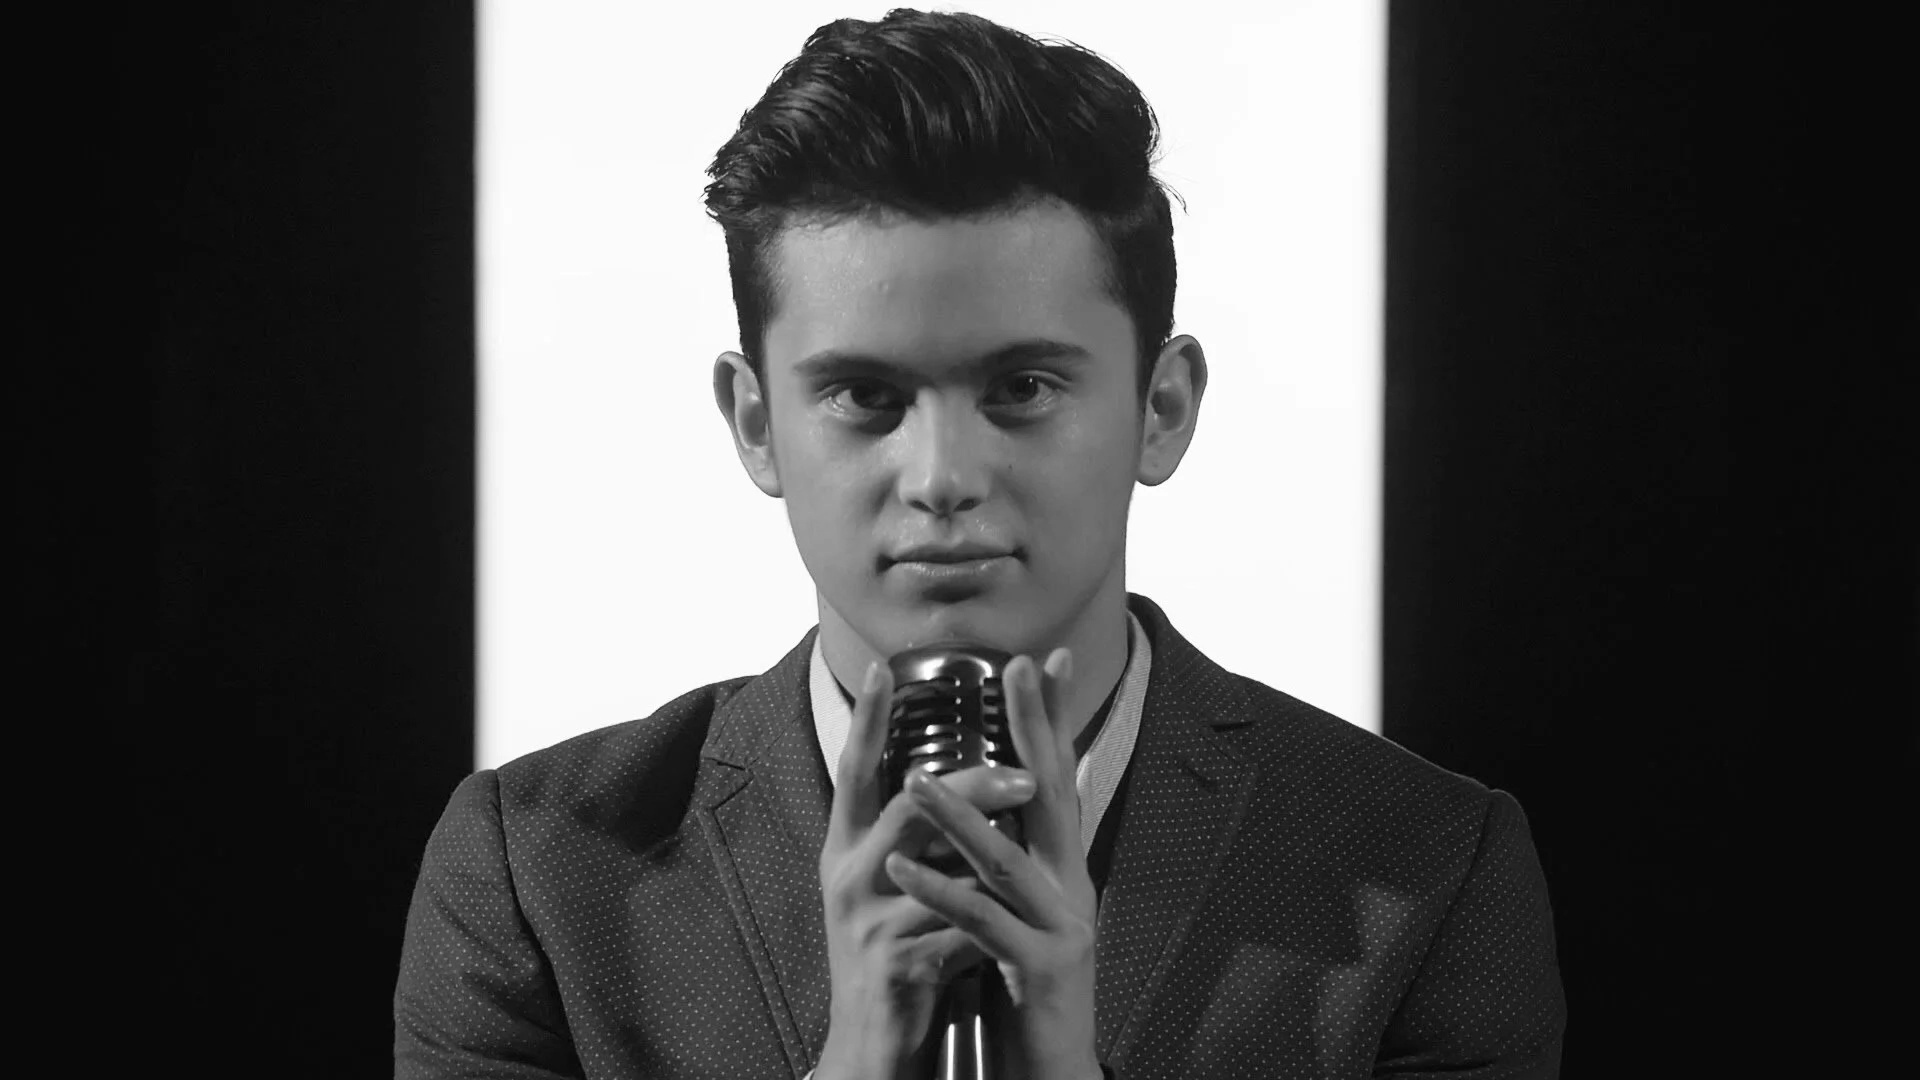 James Reid's true passion in life is singing